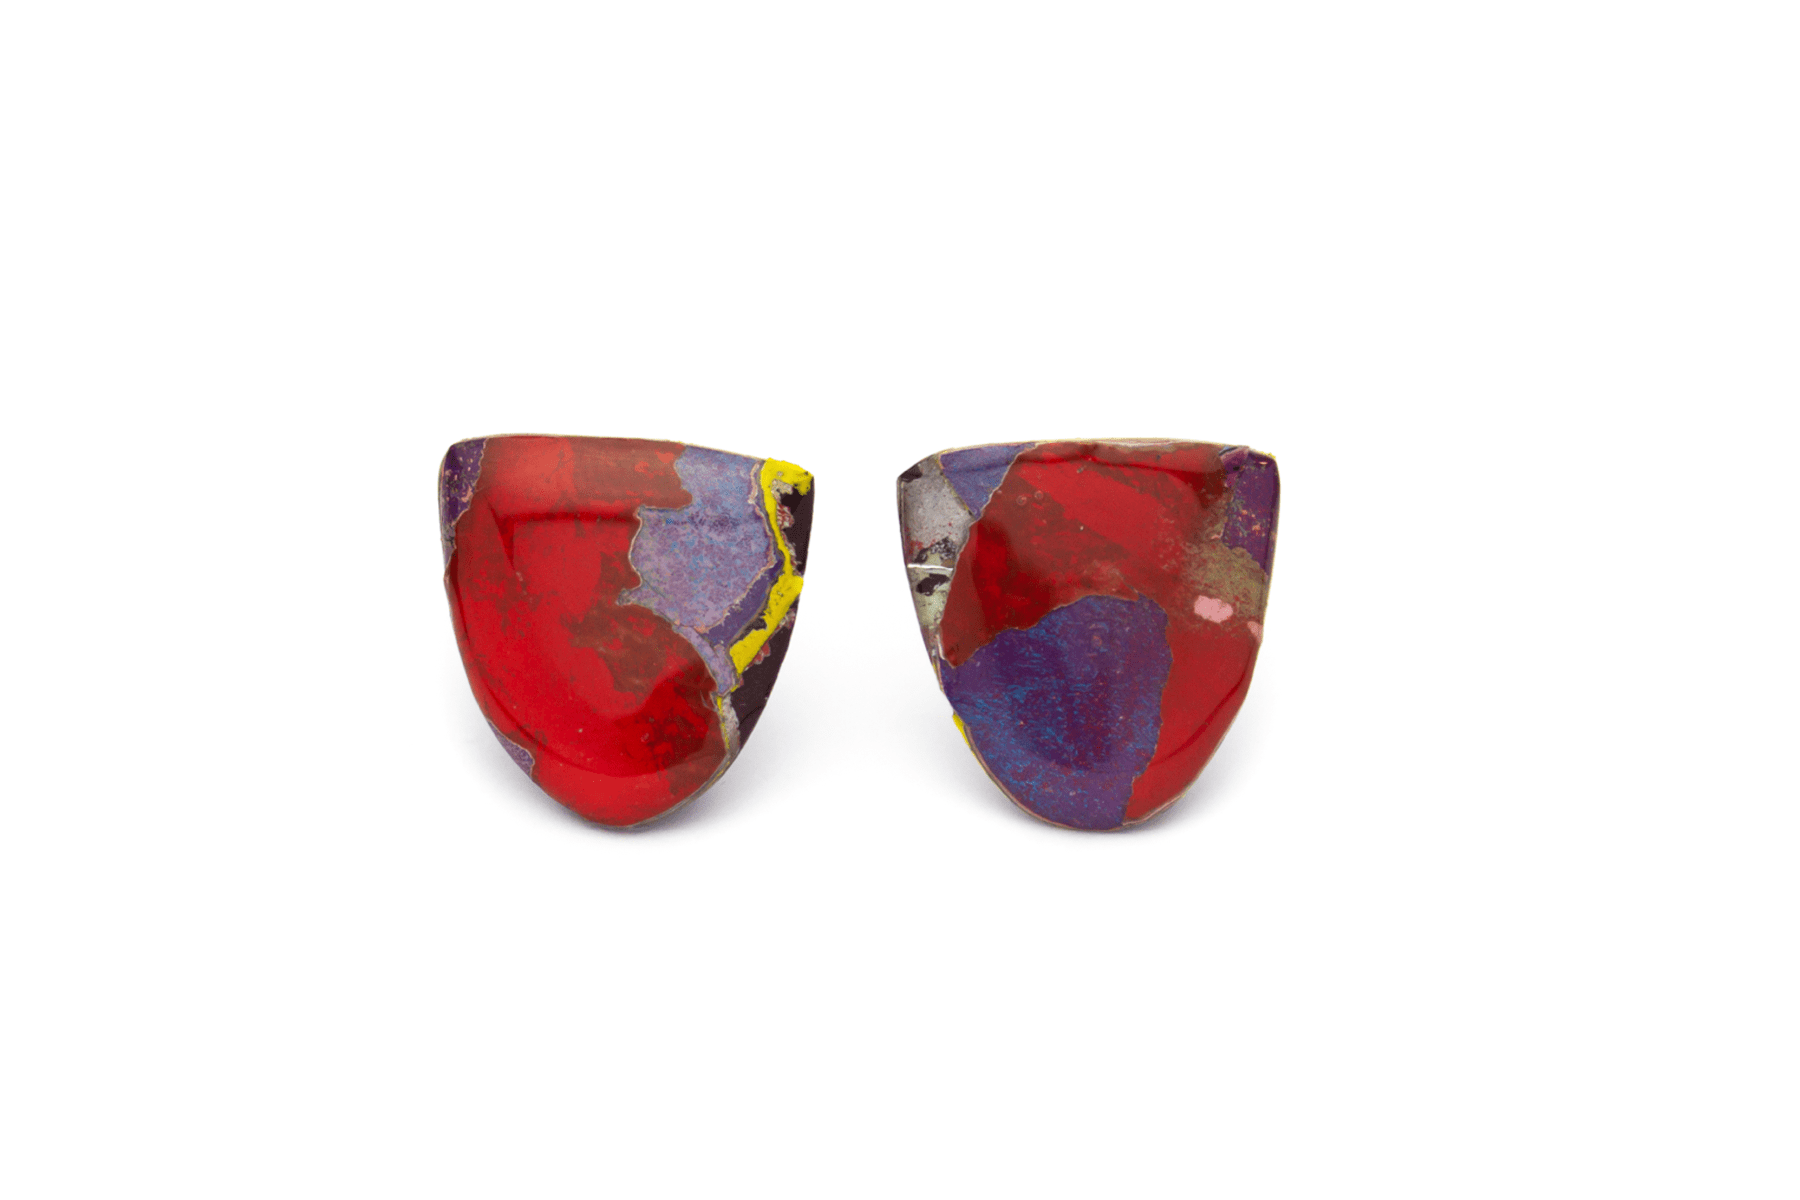 Unique statement graffiti earrings. One-of-a-kind and handmade in Melbourne from locally sourced, recycled materials.